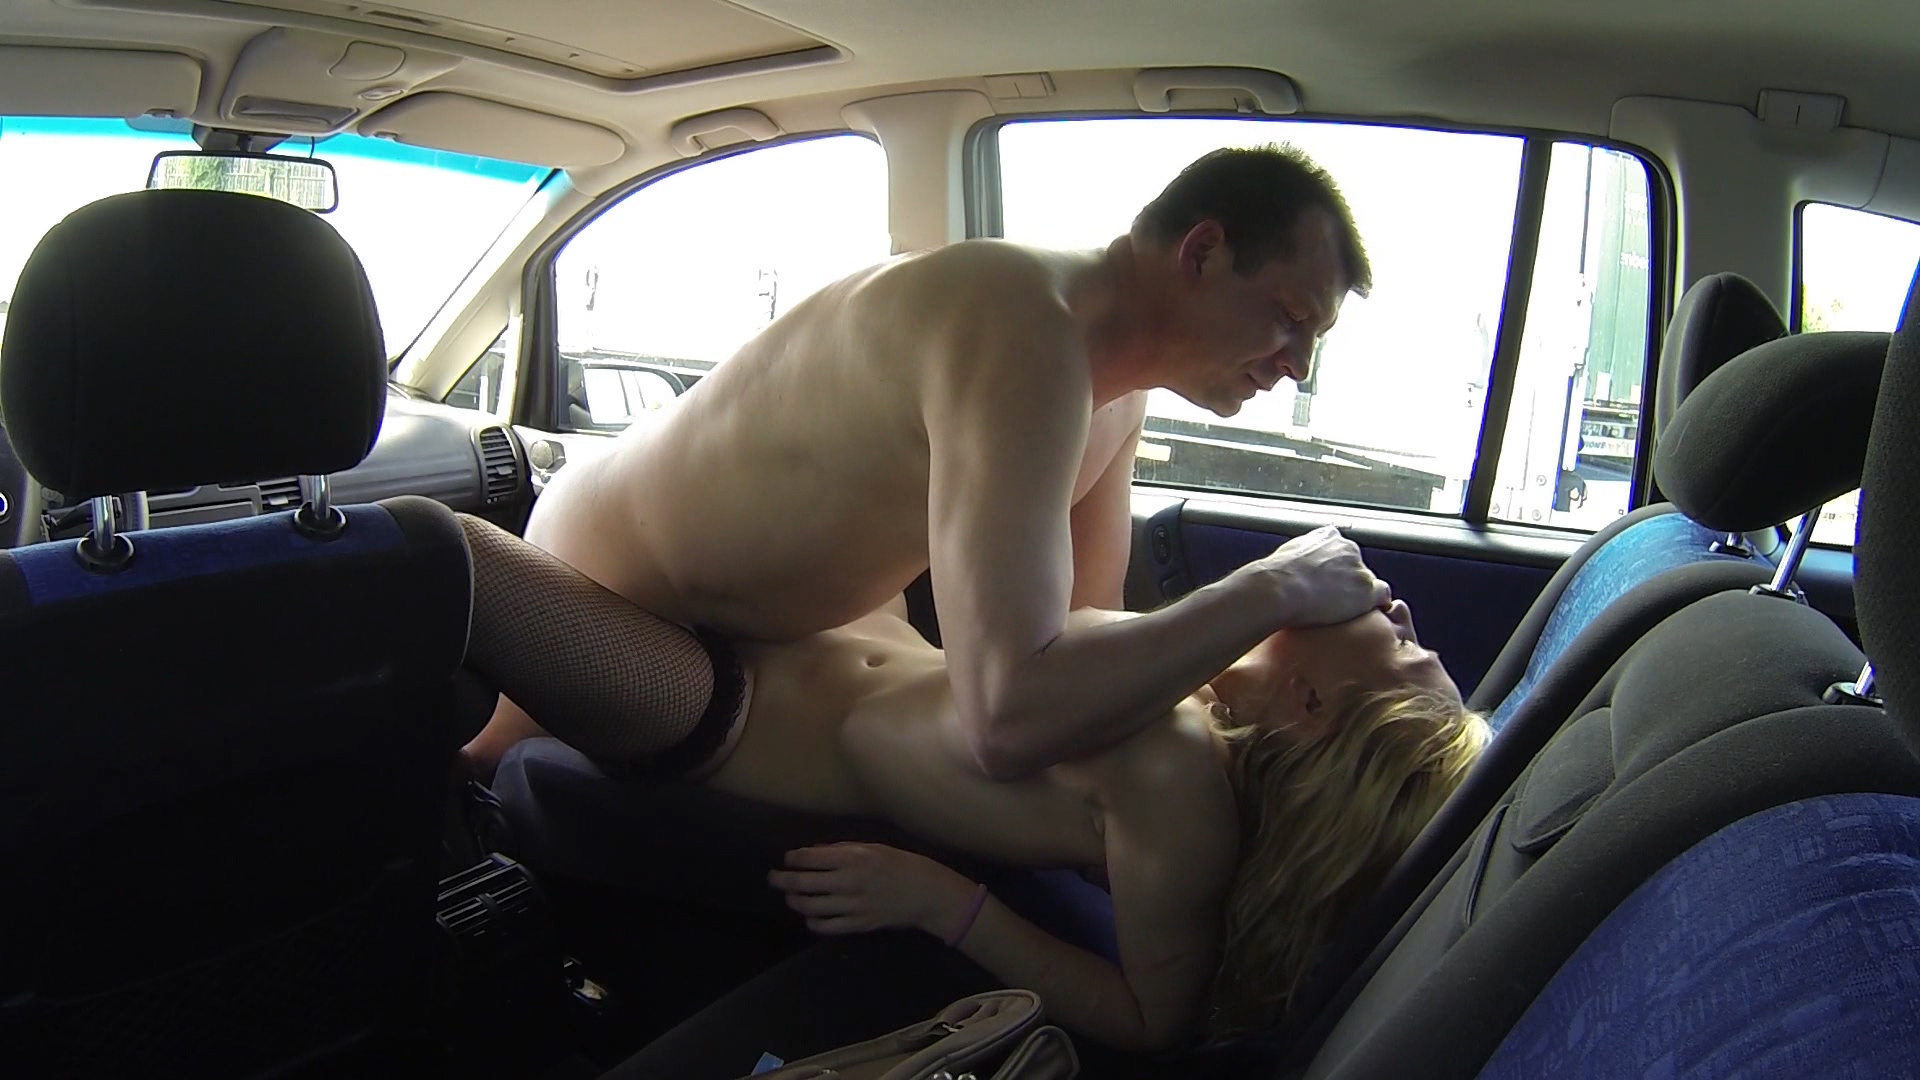 How To Have Sex In A Car Properly